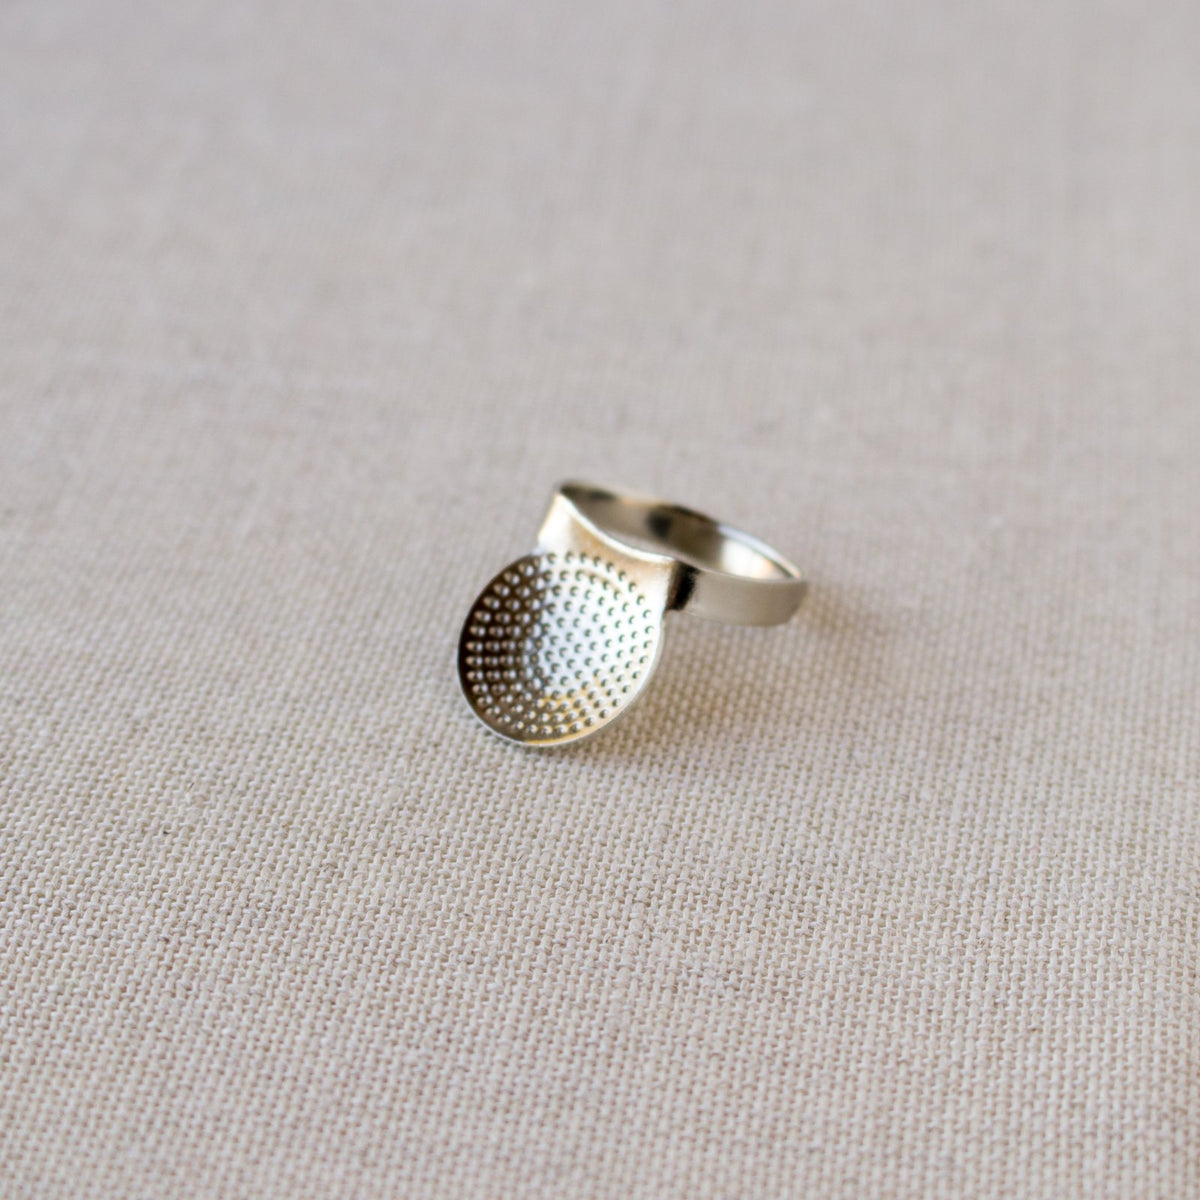 Adjustable Metal Palm Thimble for Sashiko